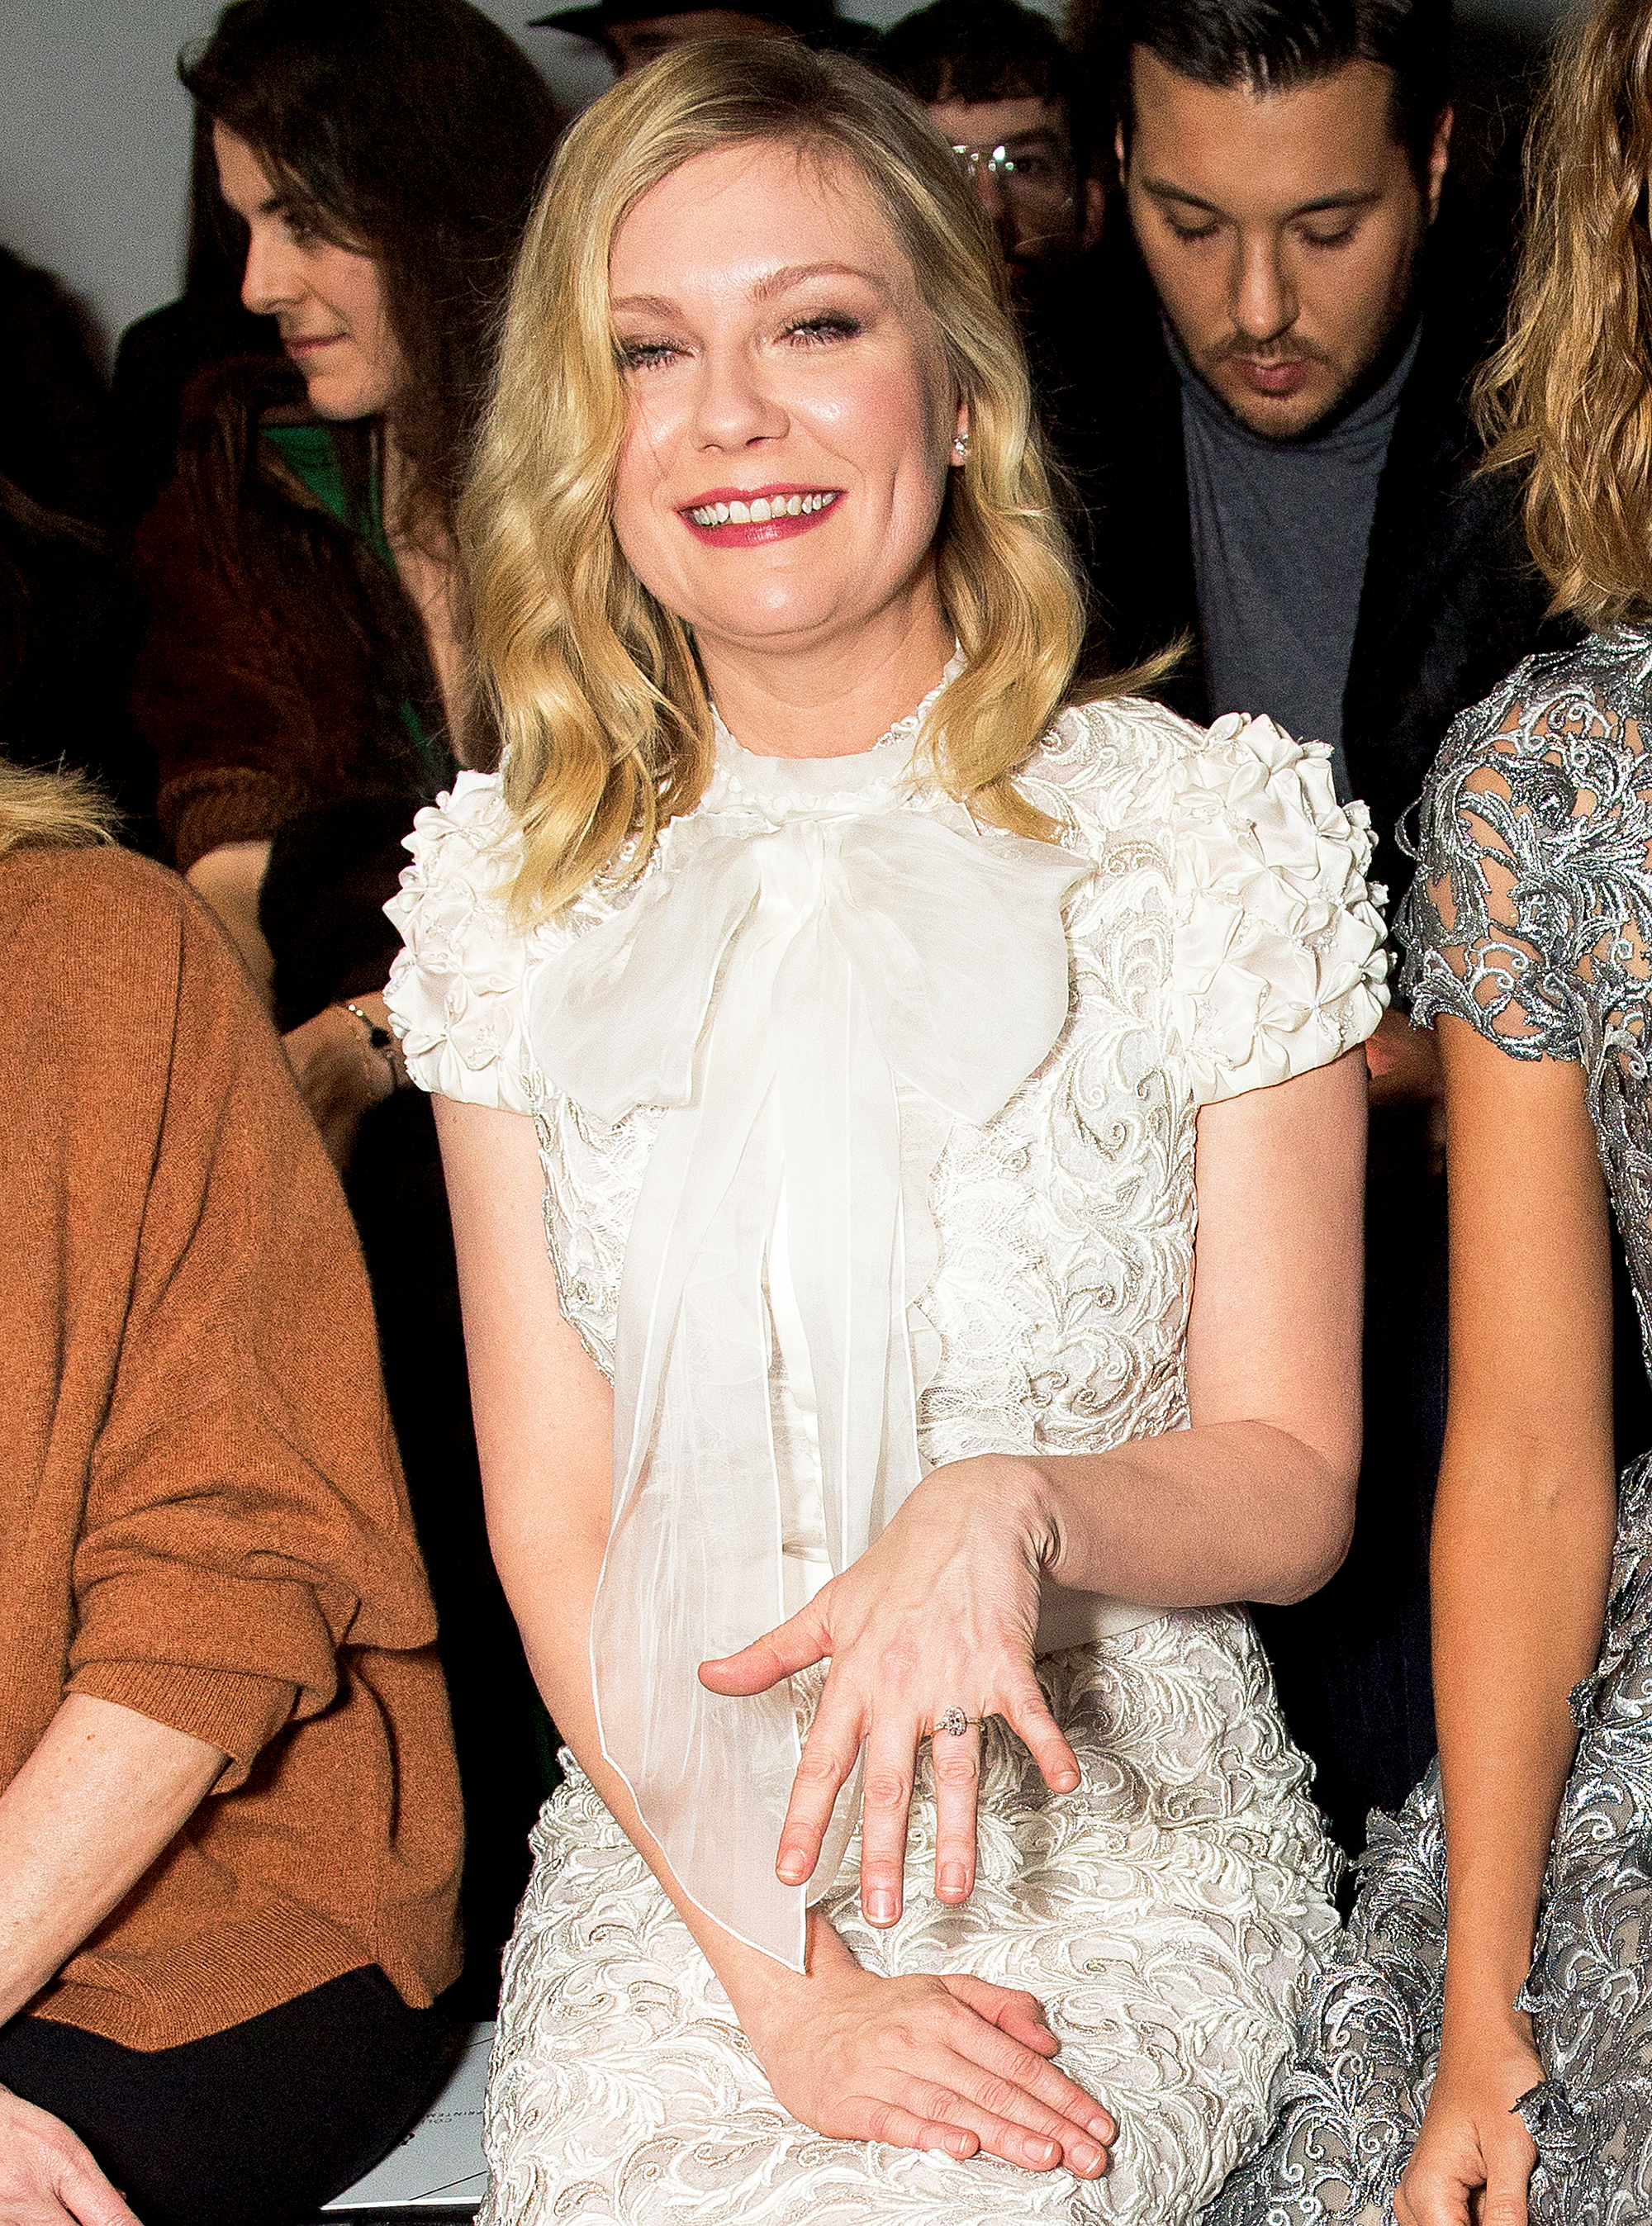 Kirsten Dunst Shows Her Engagement Ring As She Attends The Ralph Russo Haute Couture Spring Summer 2017 Show During Paris Fashion Week